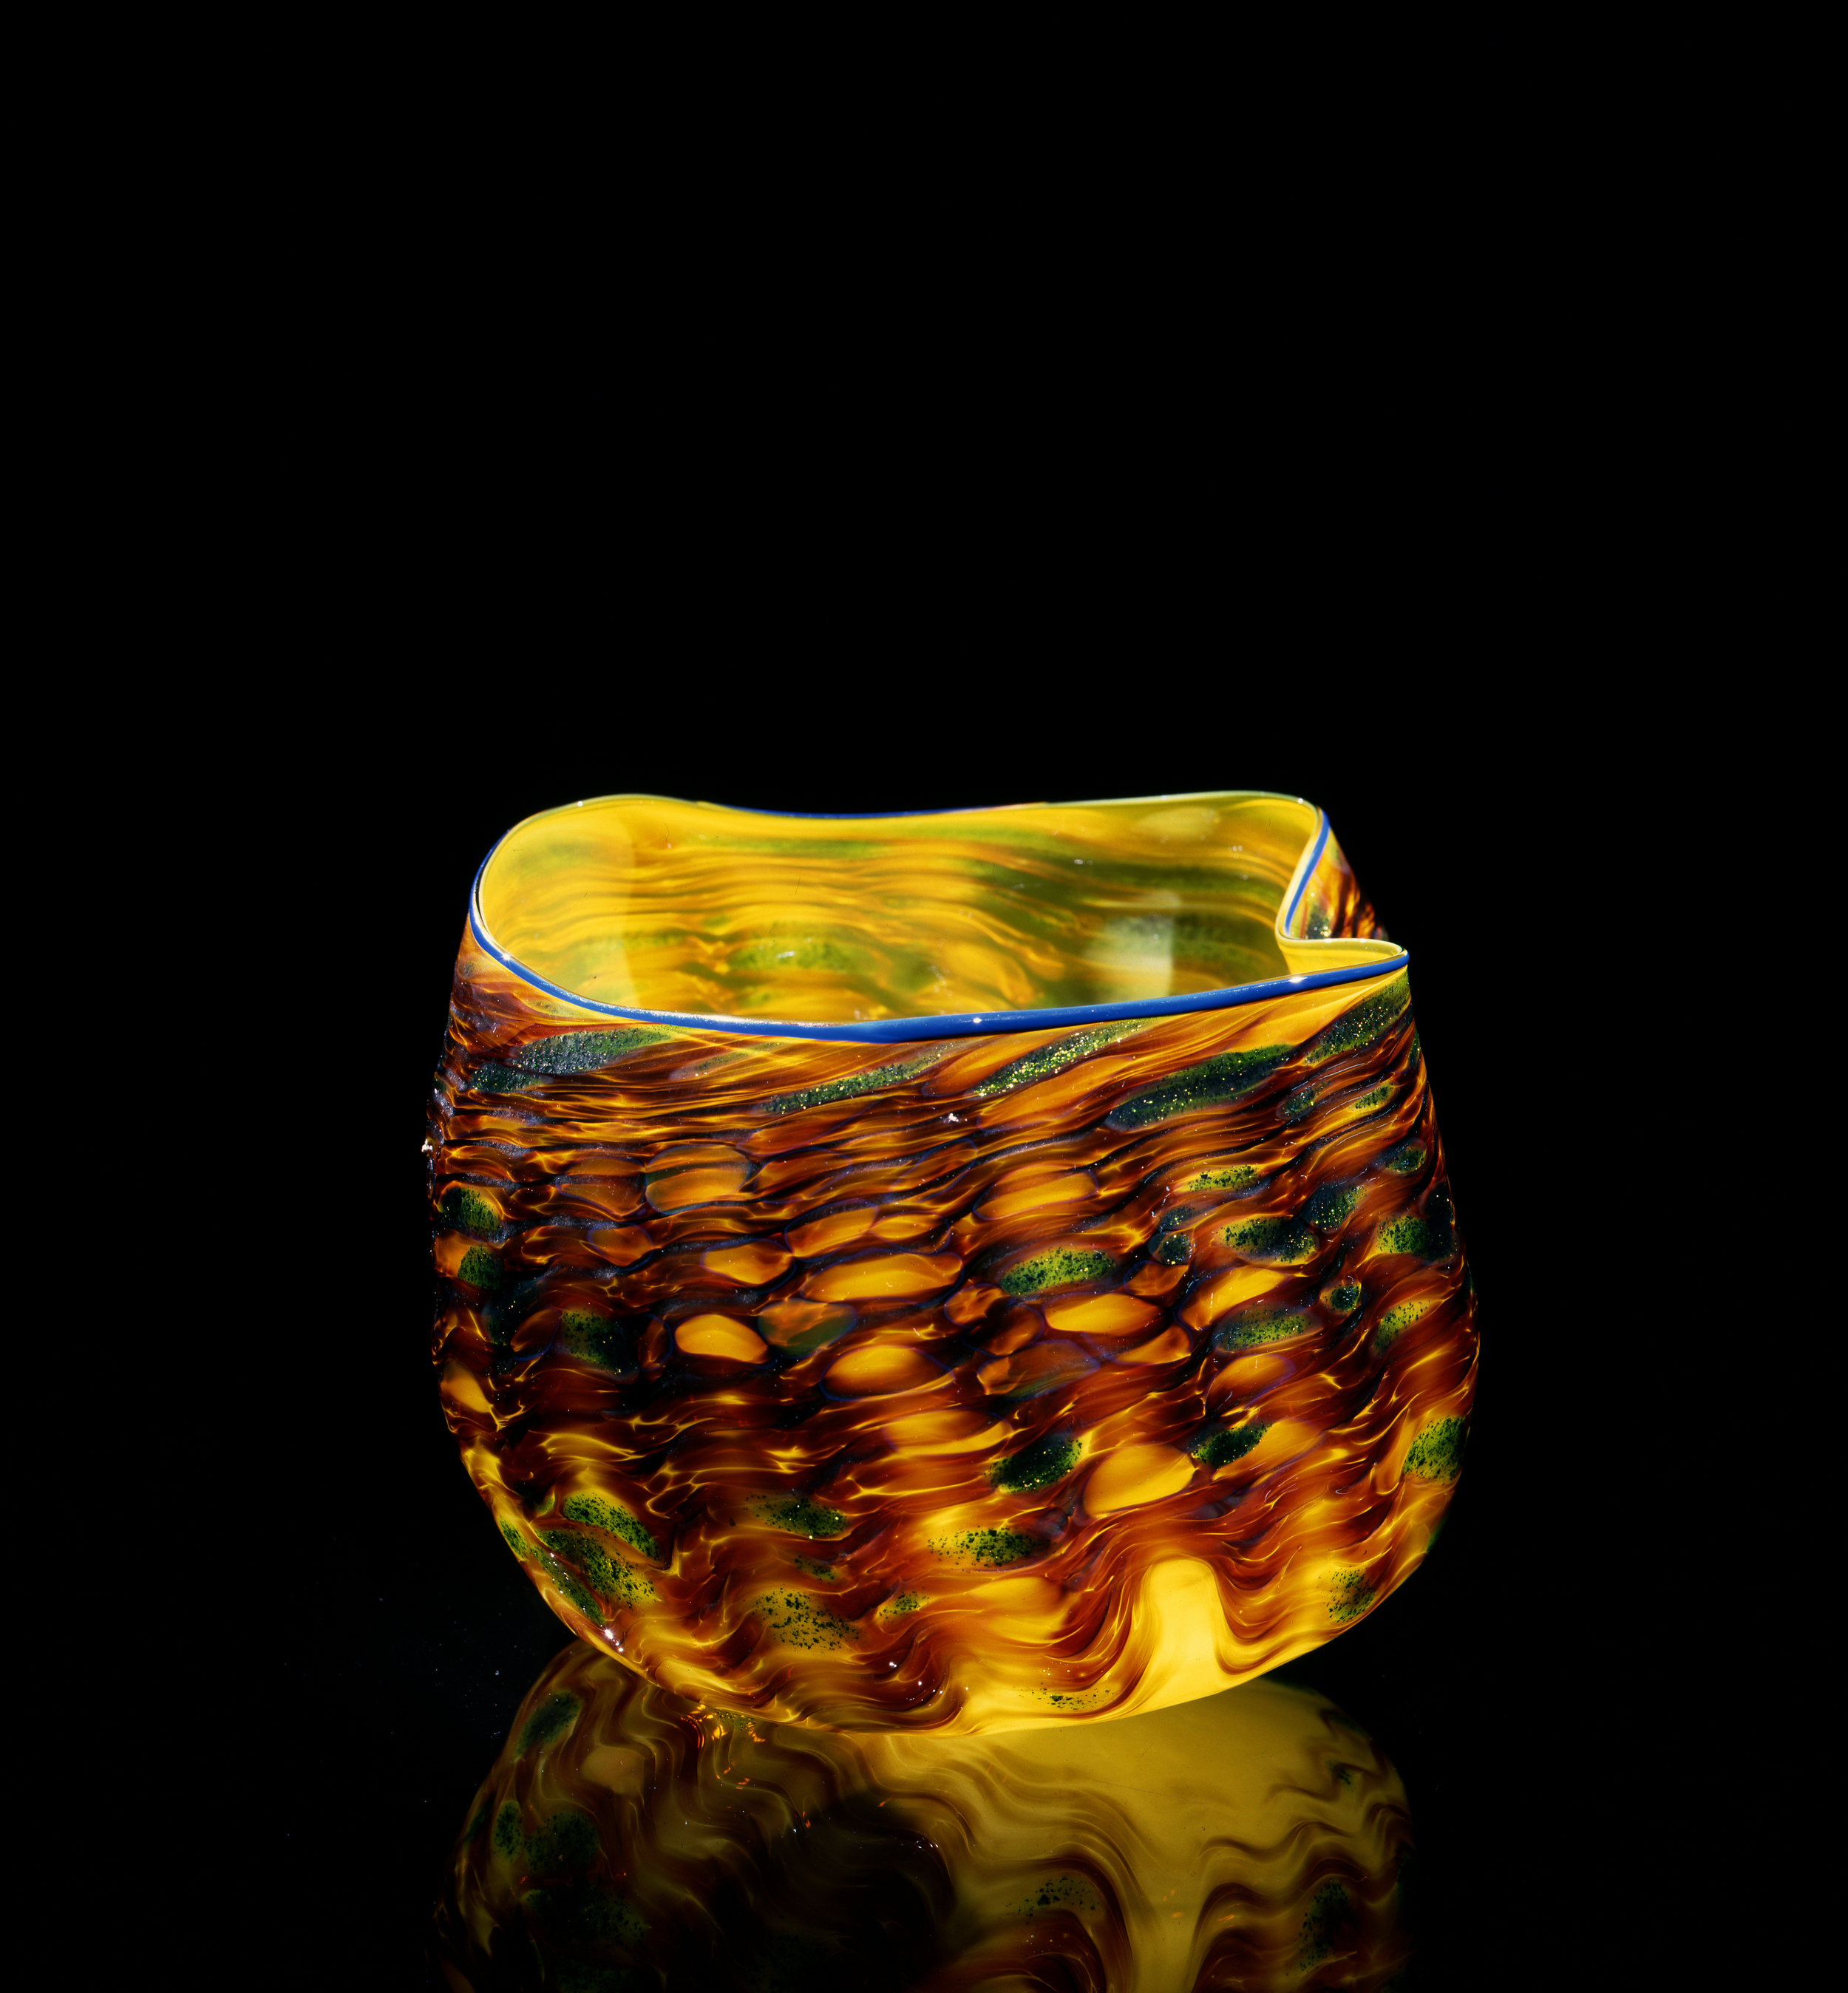 Dale Chihuly, Quince Yellow Macchia with Argon Blue Lip Wrap (1981, glass, 6 x 9 x 7inches), DC.97